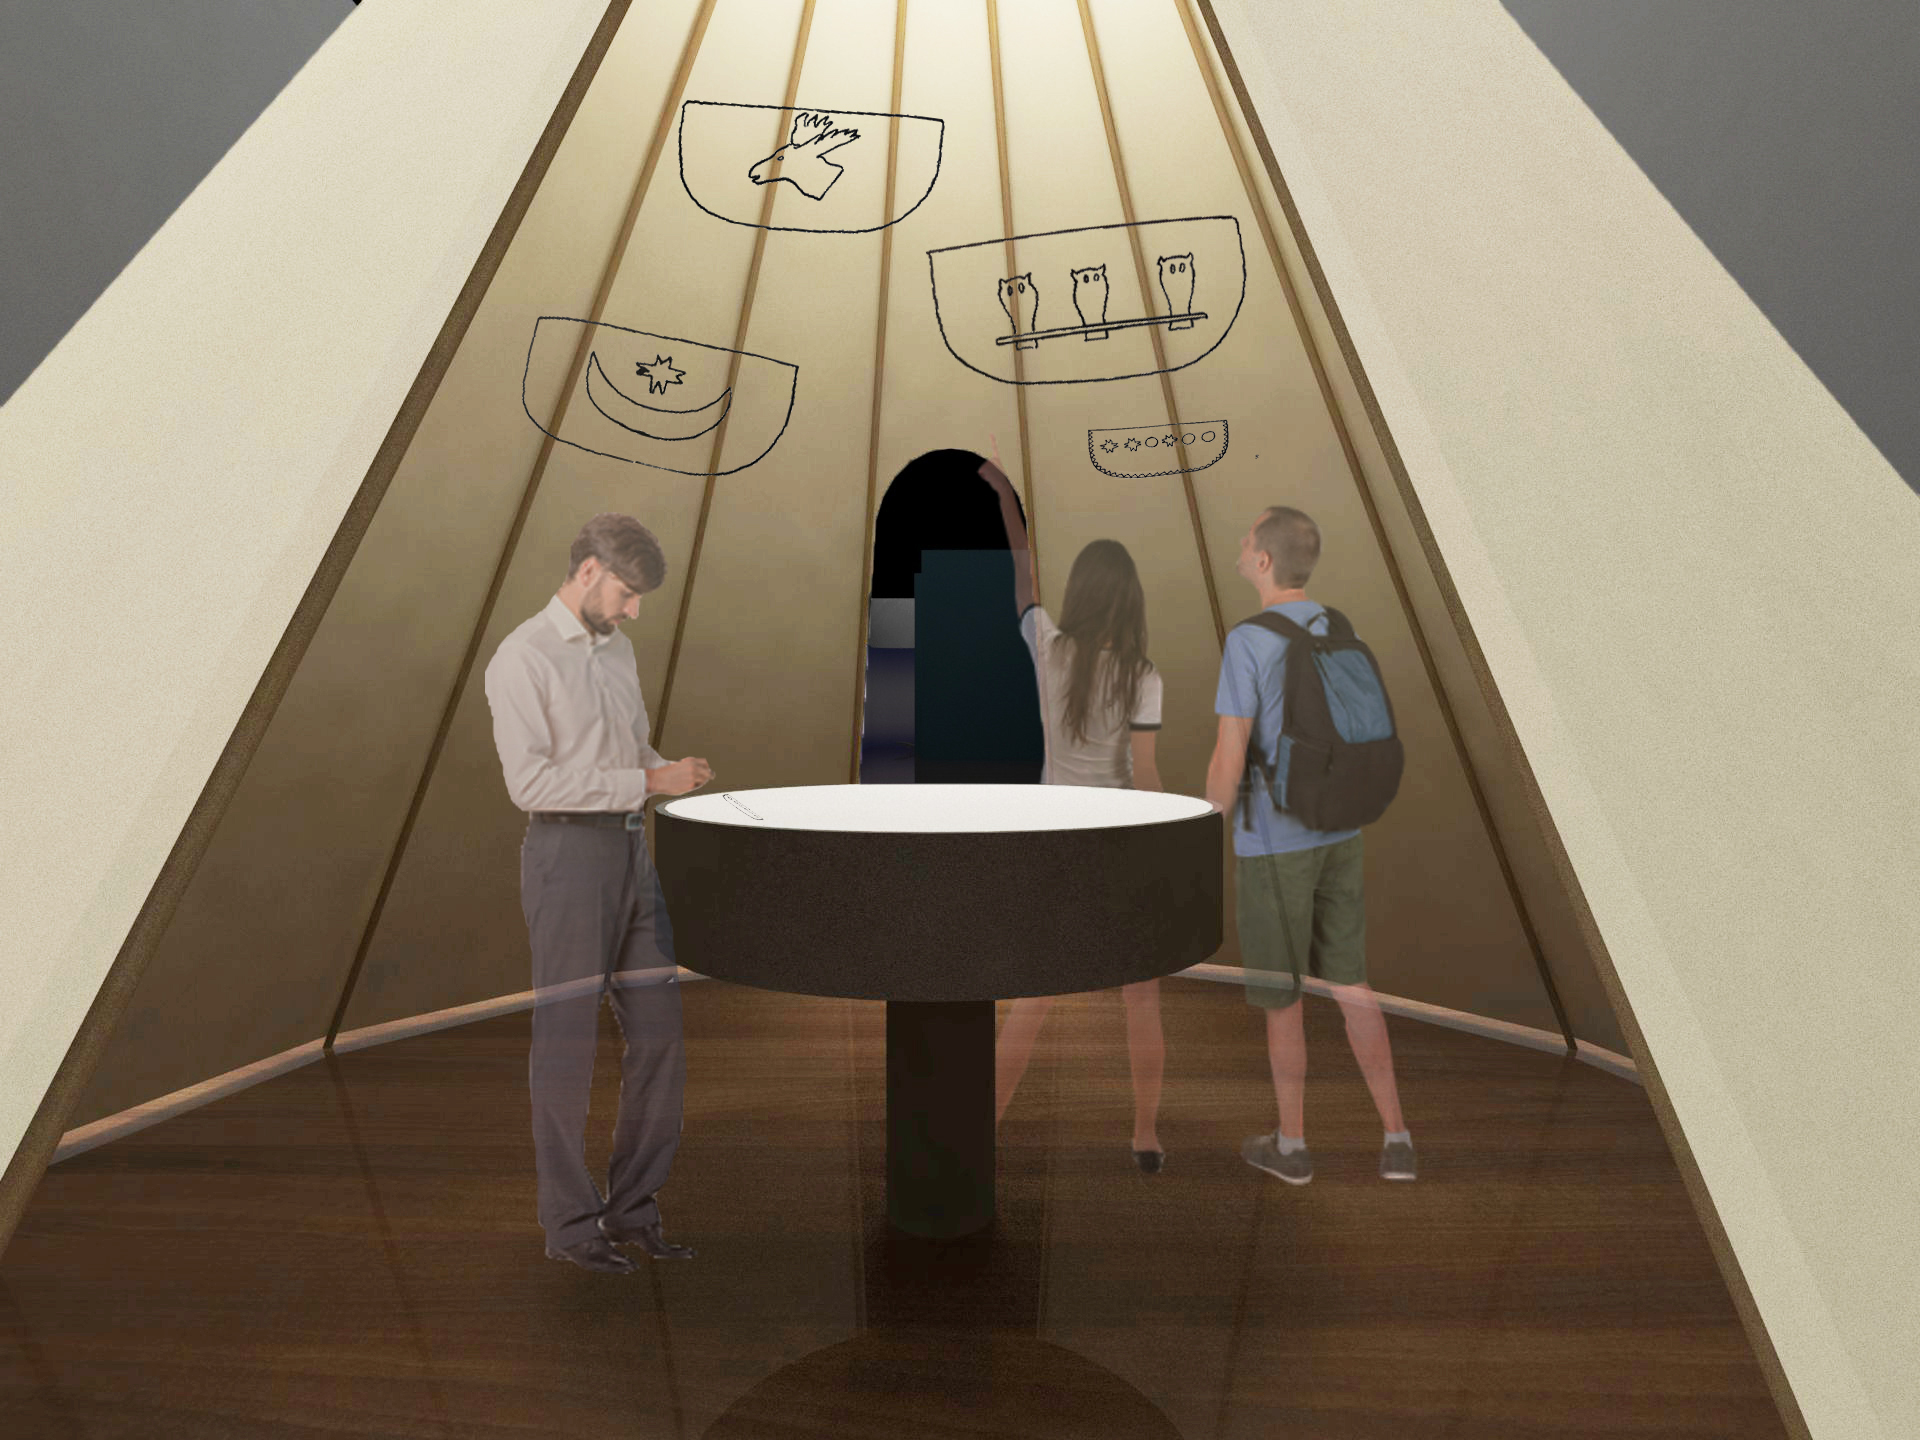 Visitors walk into a fabric hut. On the round interactive kiosk, they can draw their own symbol to decorate the digital boat head. The personal symbols get projected on the surface of hut interior.